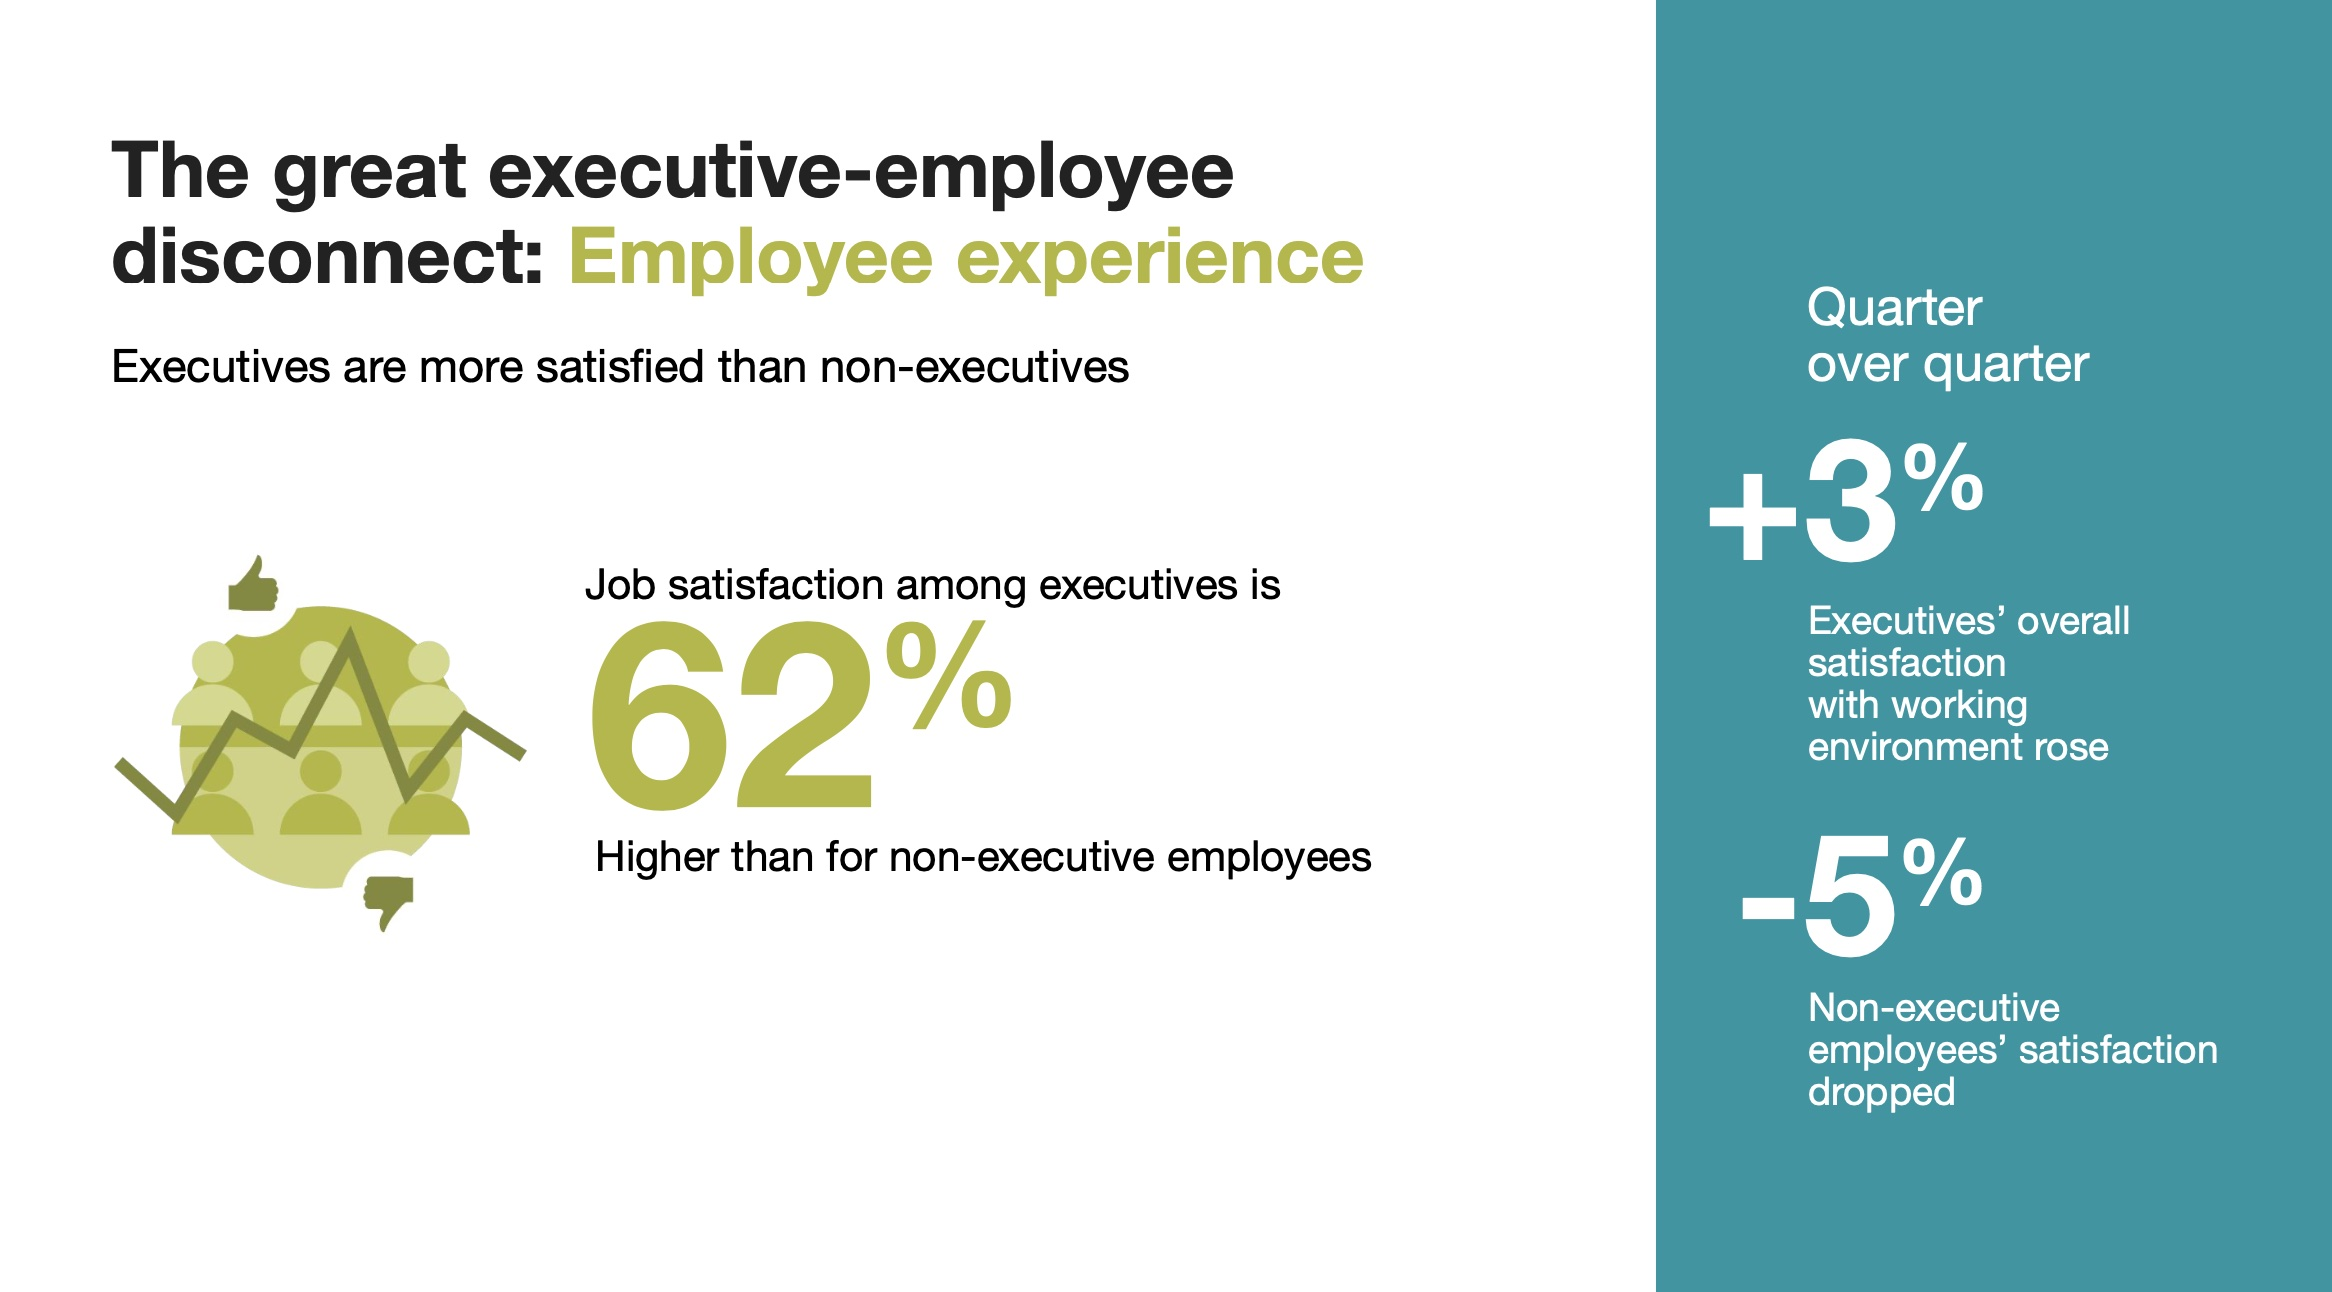 Future Forum graphic on executive-employee disconnect